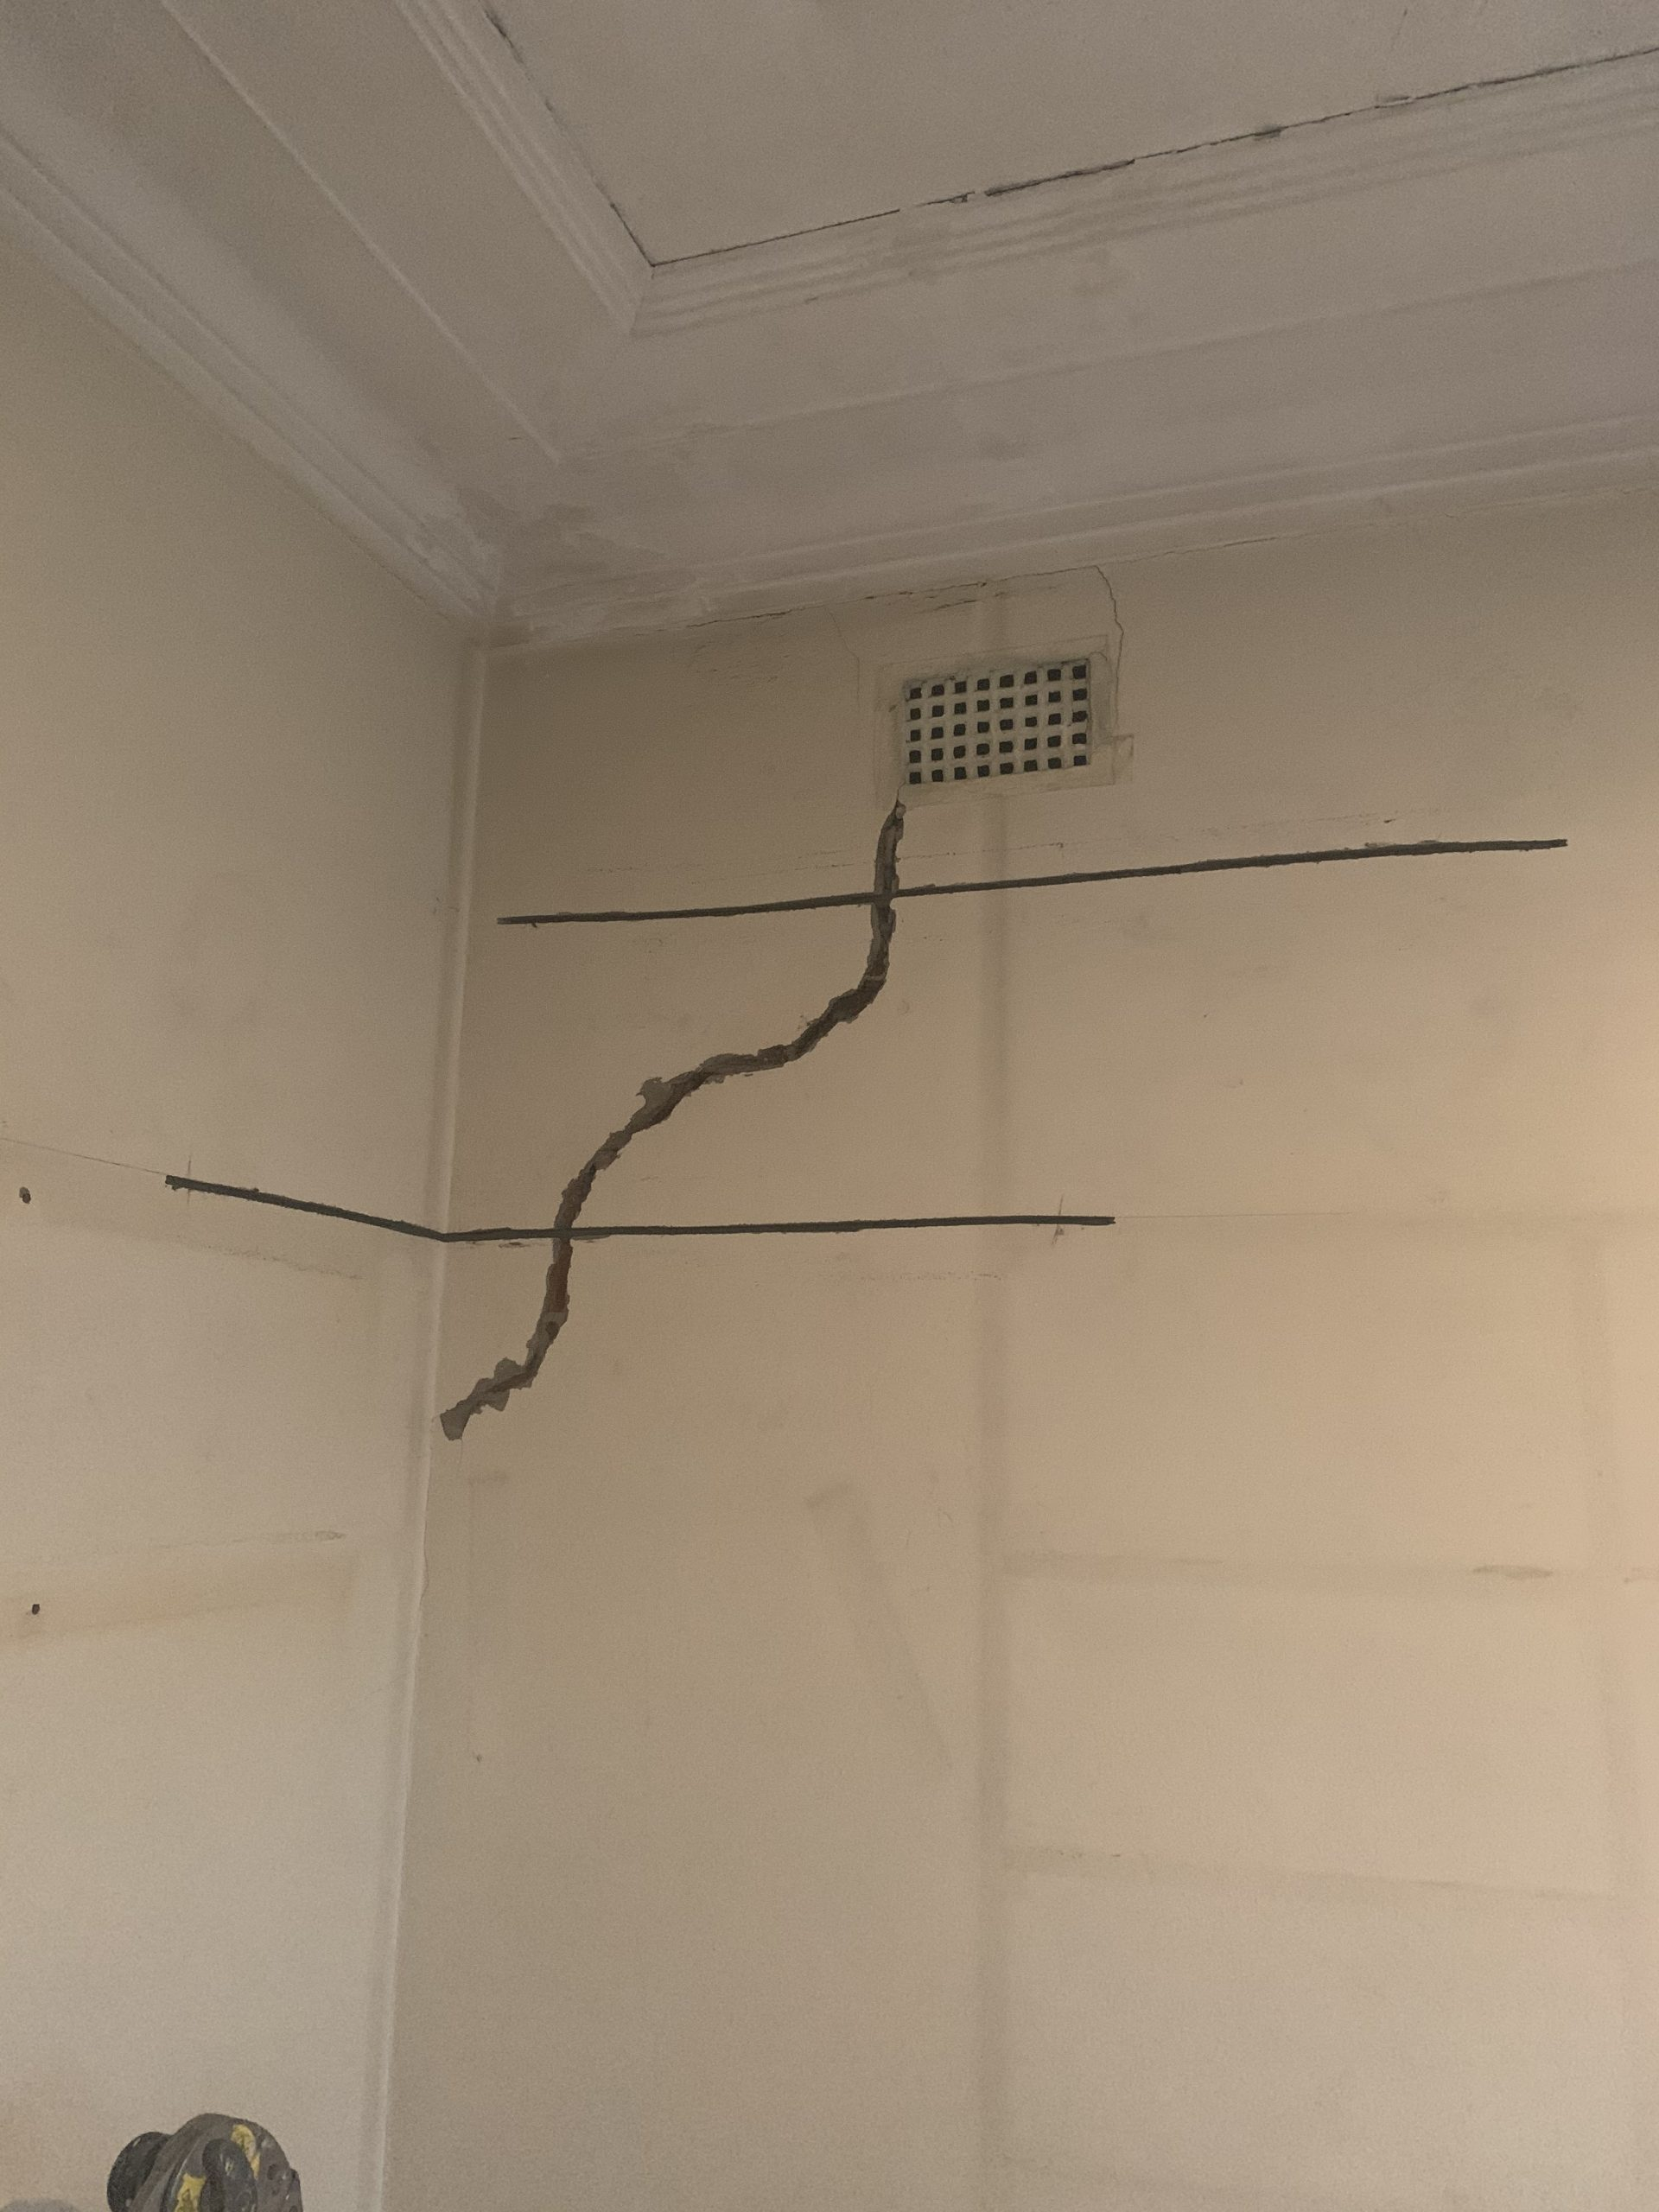 interior wall crack stitching